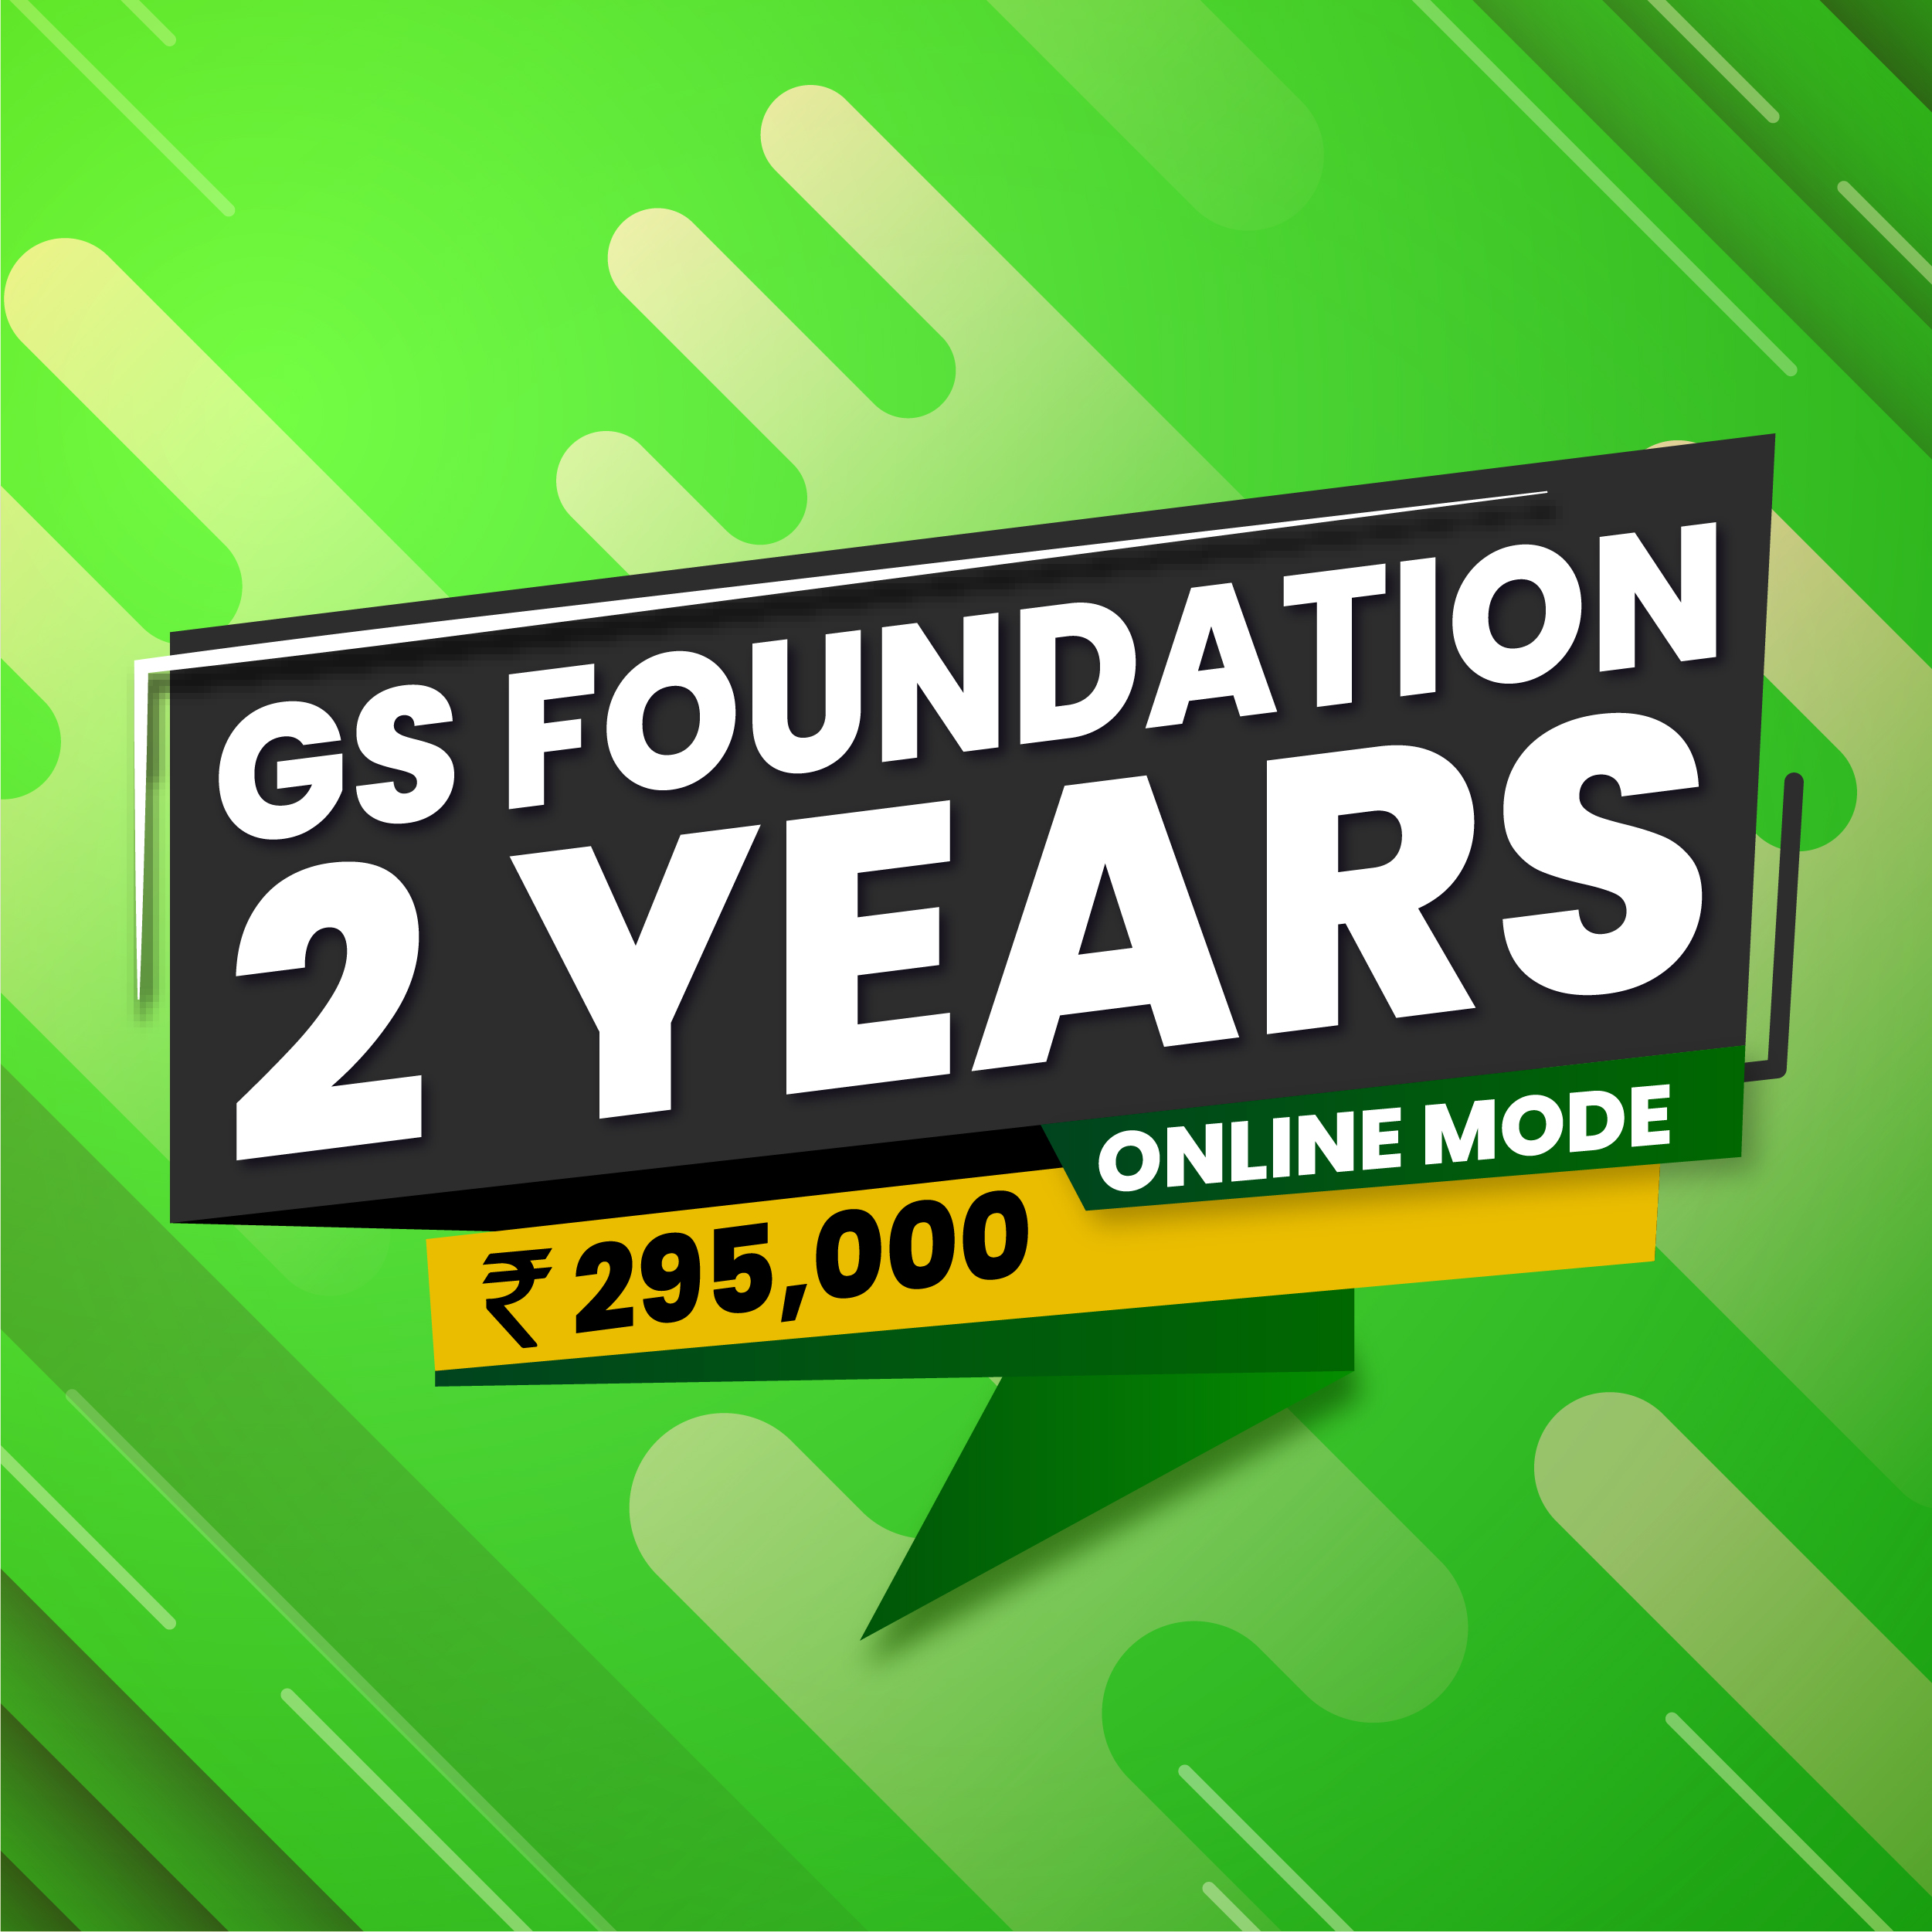 GS FOUNDATION 2 YEARS